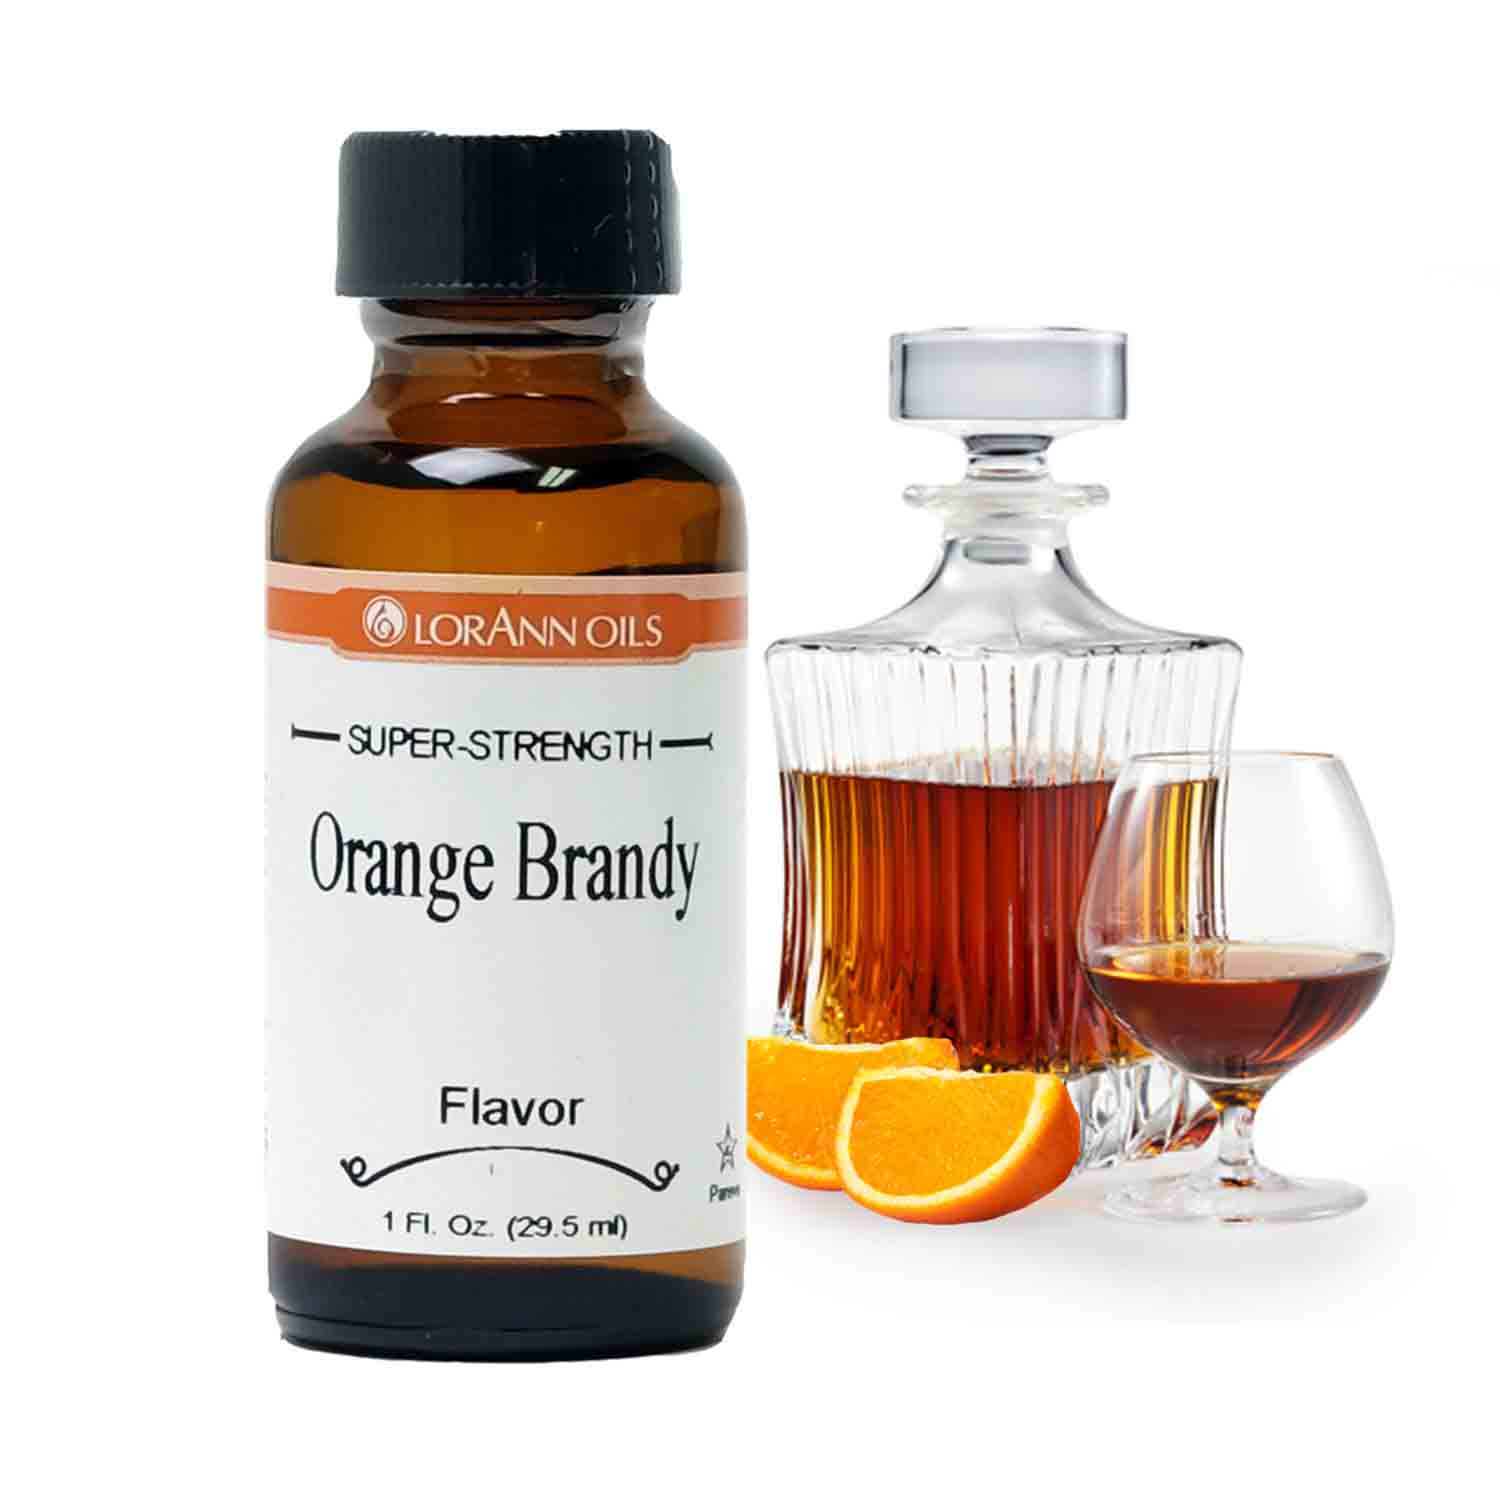 Orange Brandy LorAnn Super-Strength Flavor